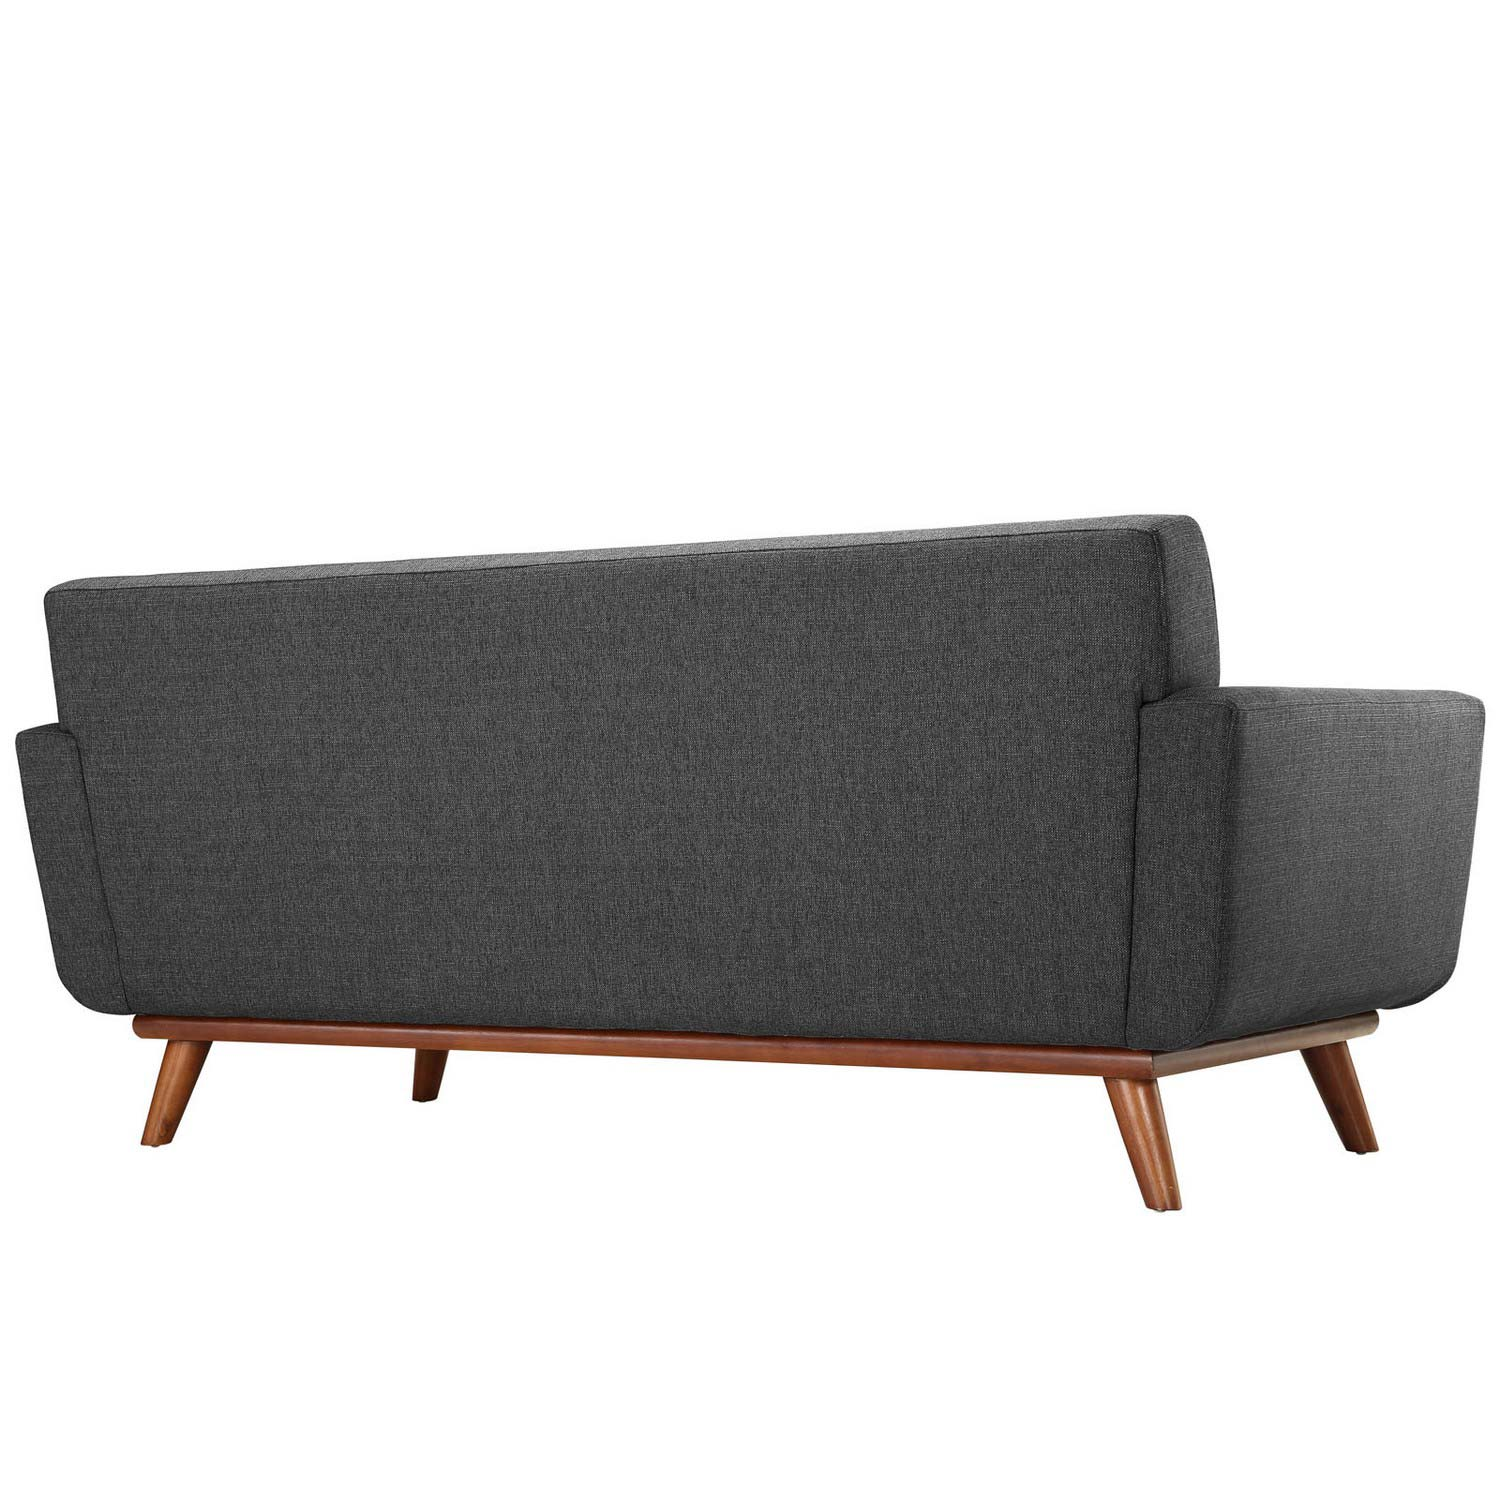 Modway Engage Upholstered Loveseat - Gray